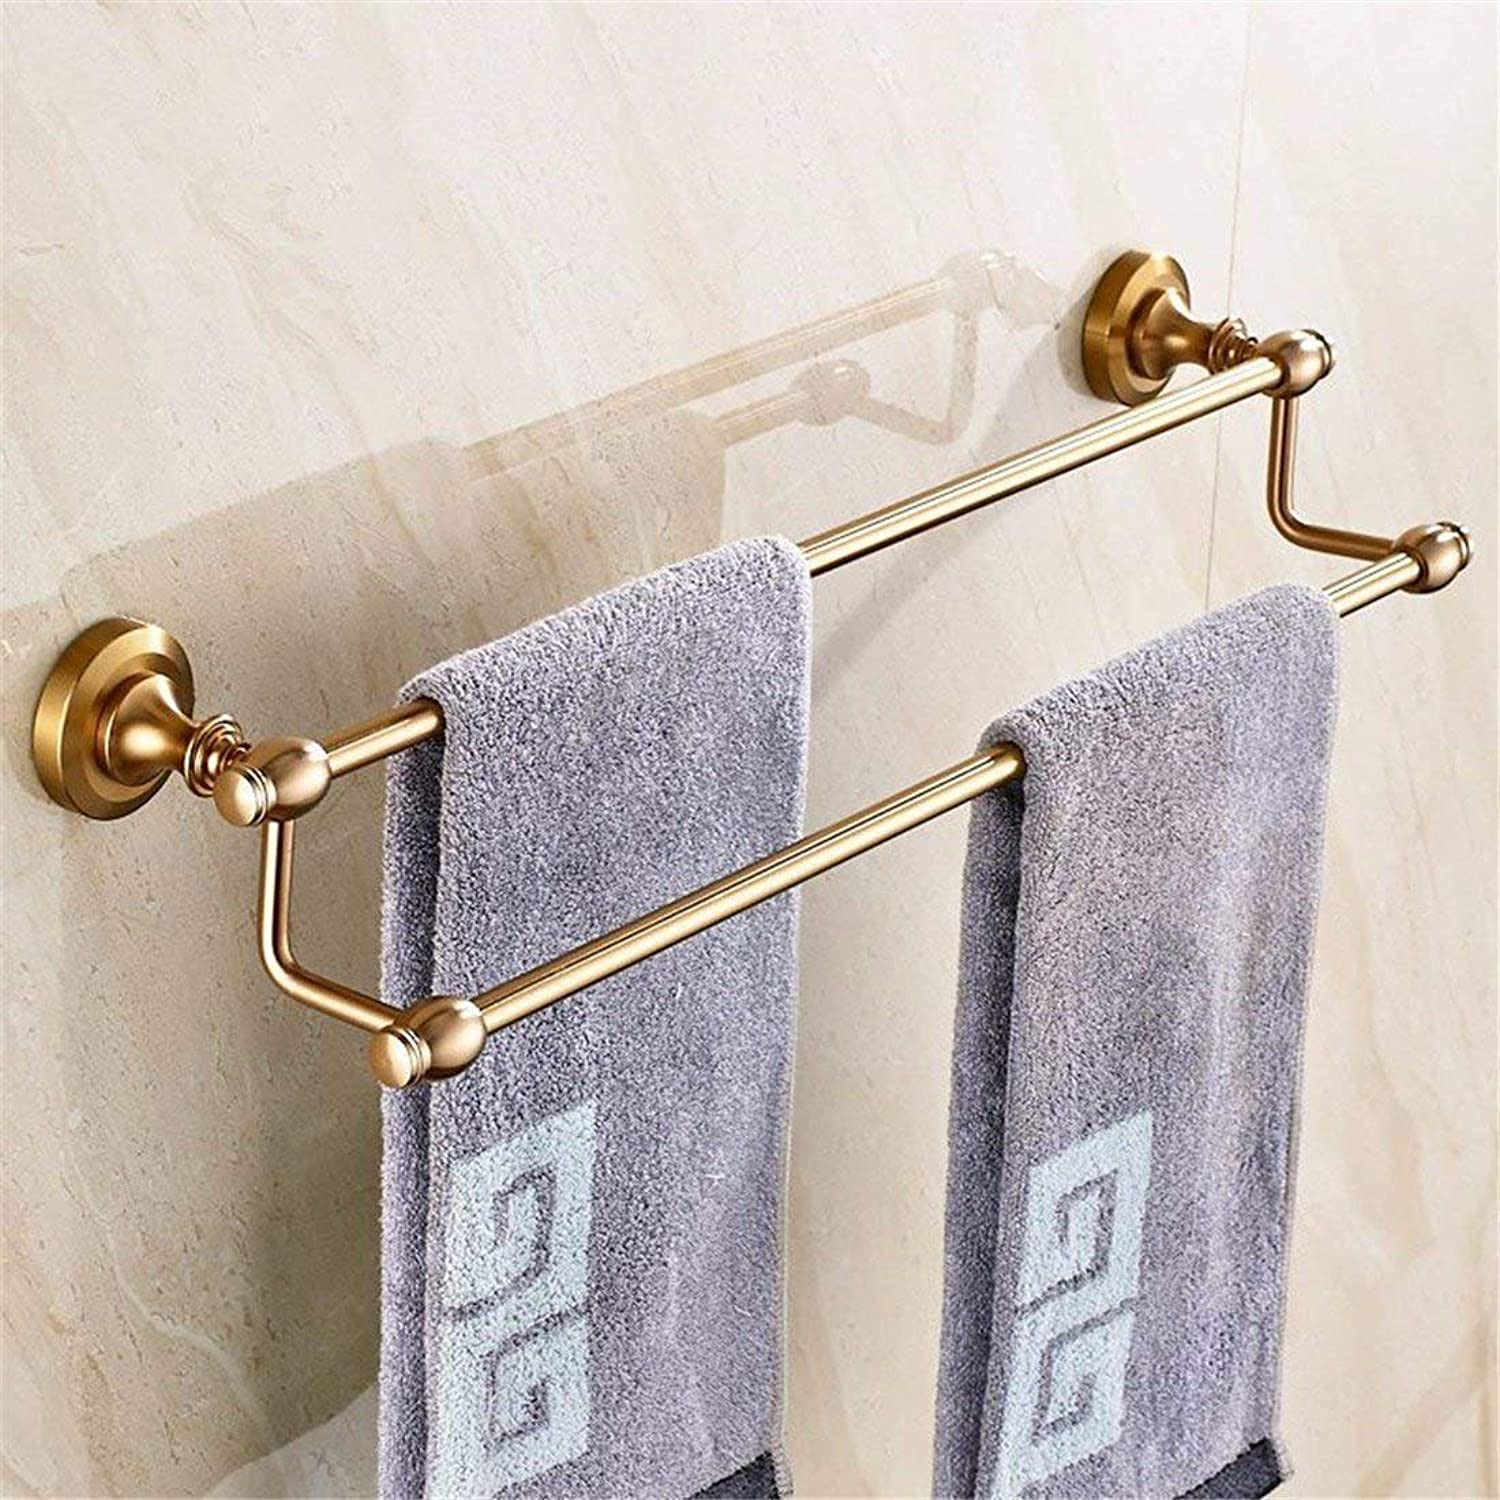 Of Copper Sheet of European Style Former, Bathroom Accessories Antiques, Toilet Paper, Dry-Towels, Single and Double Pole,Double Pole